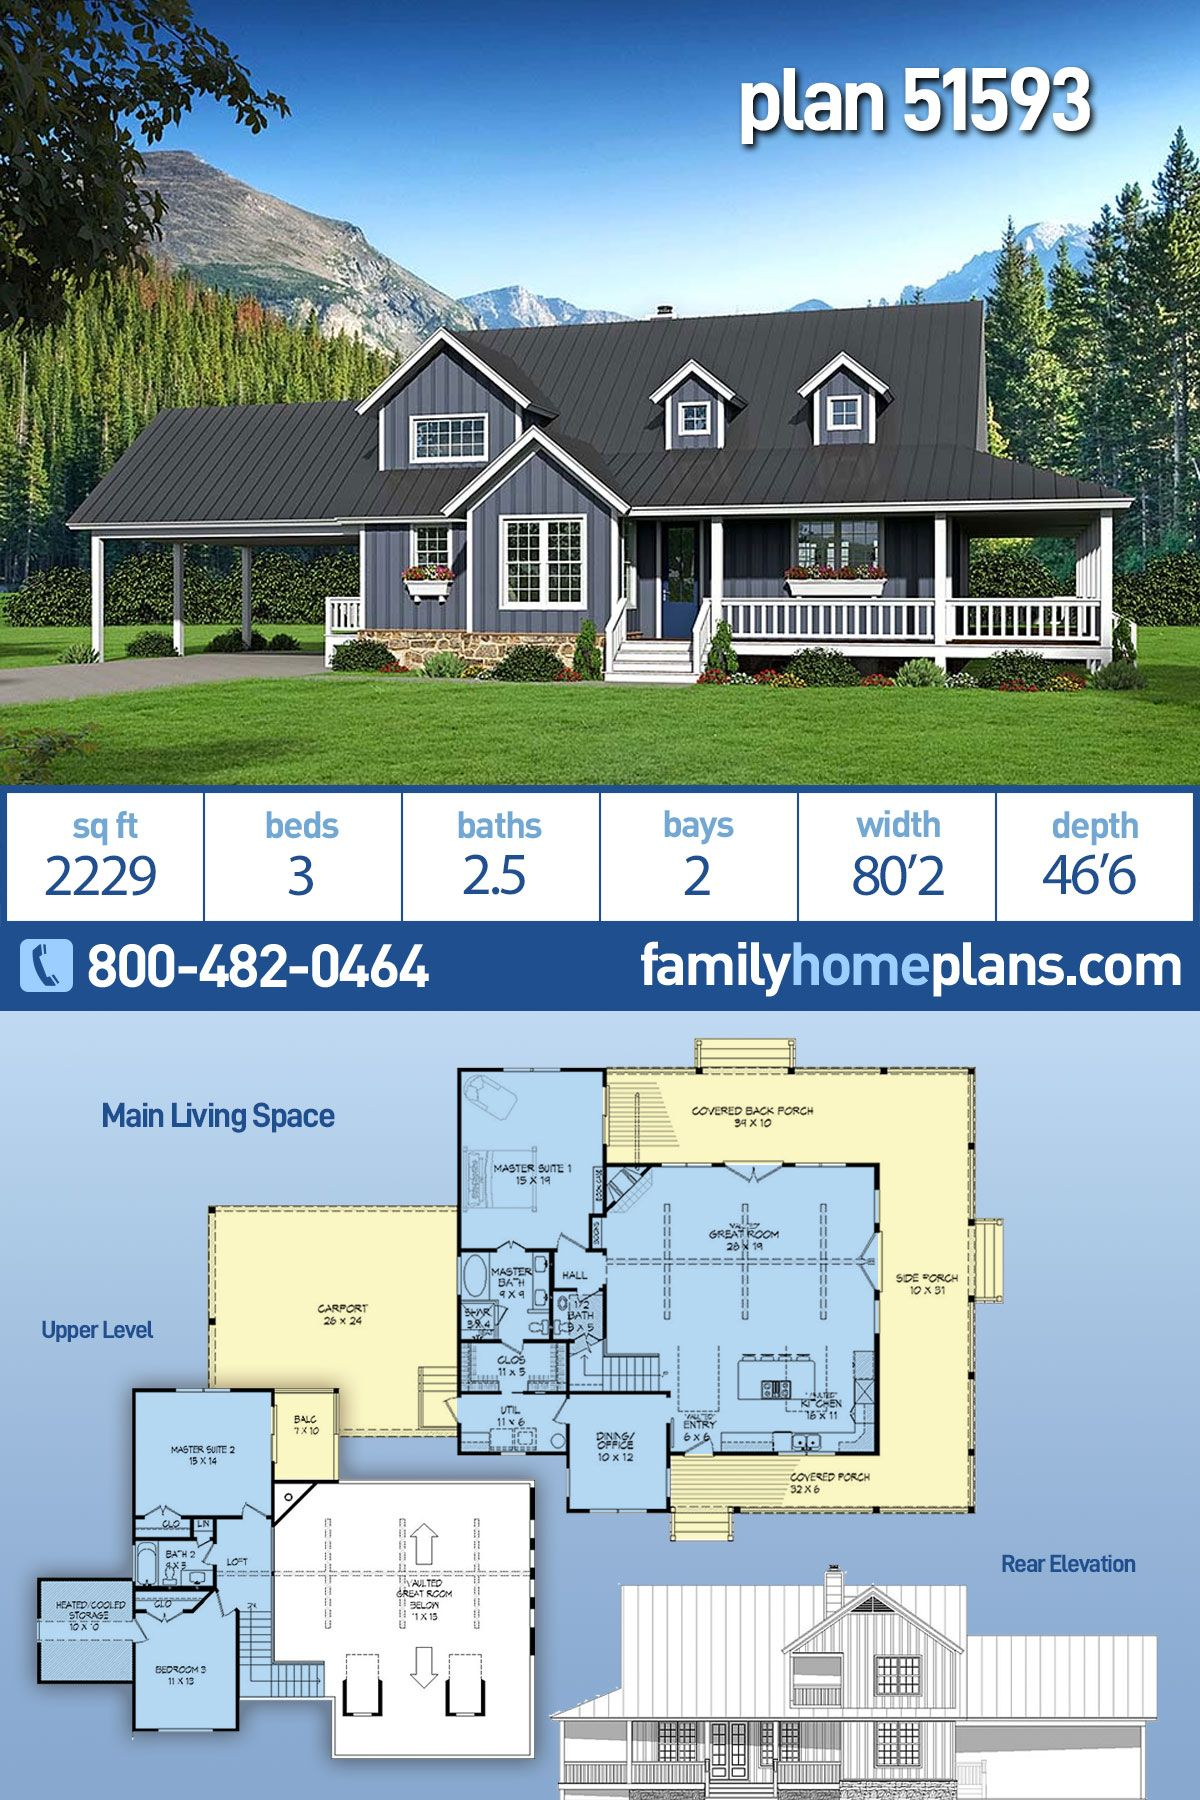 Southern Style House Plan 51593 With 3 Bed 3 Bath 2 Car Garage House With Balcony House Plans Country House